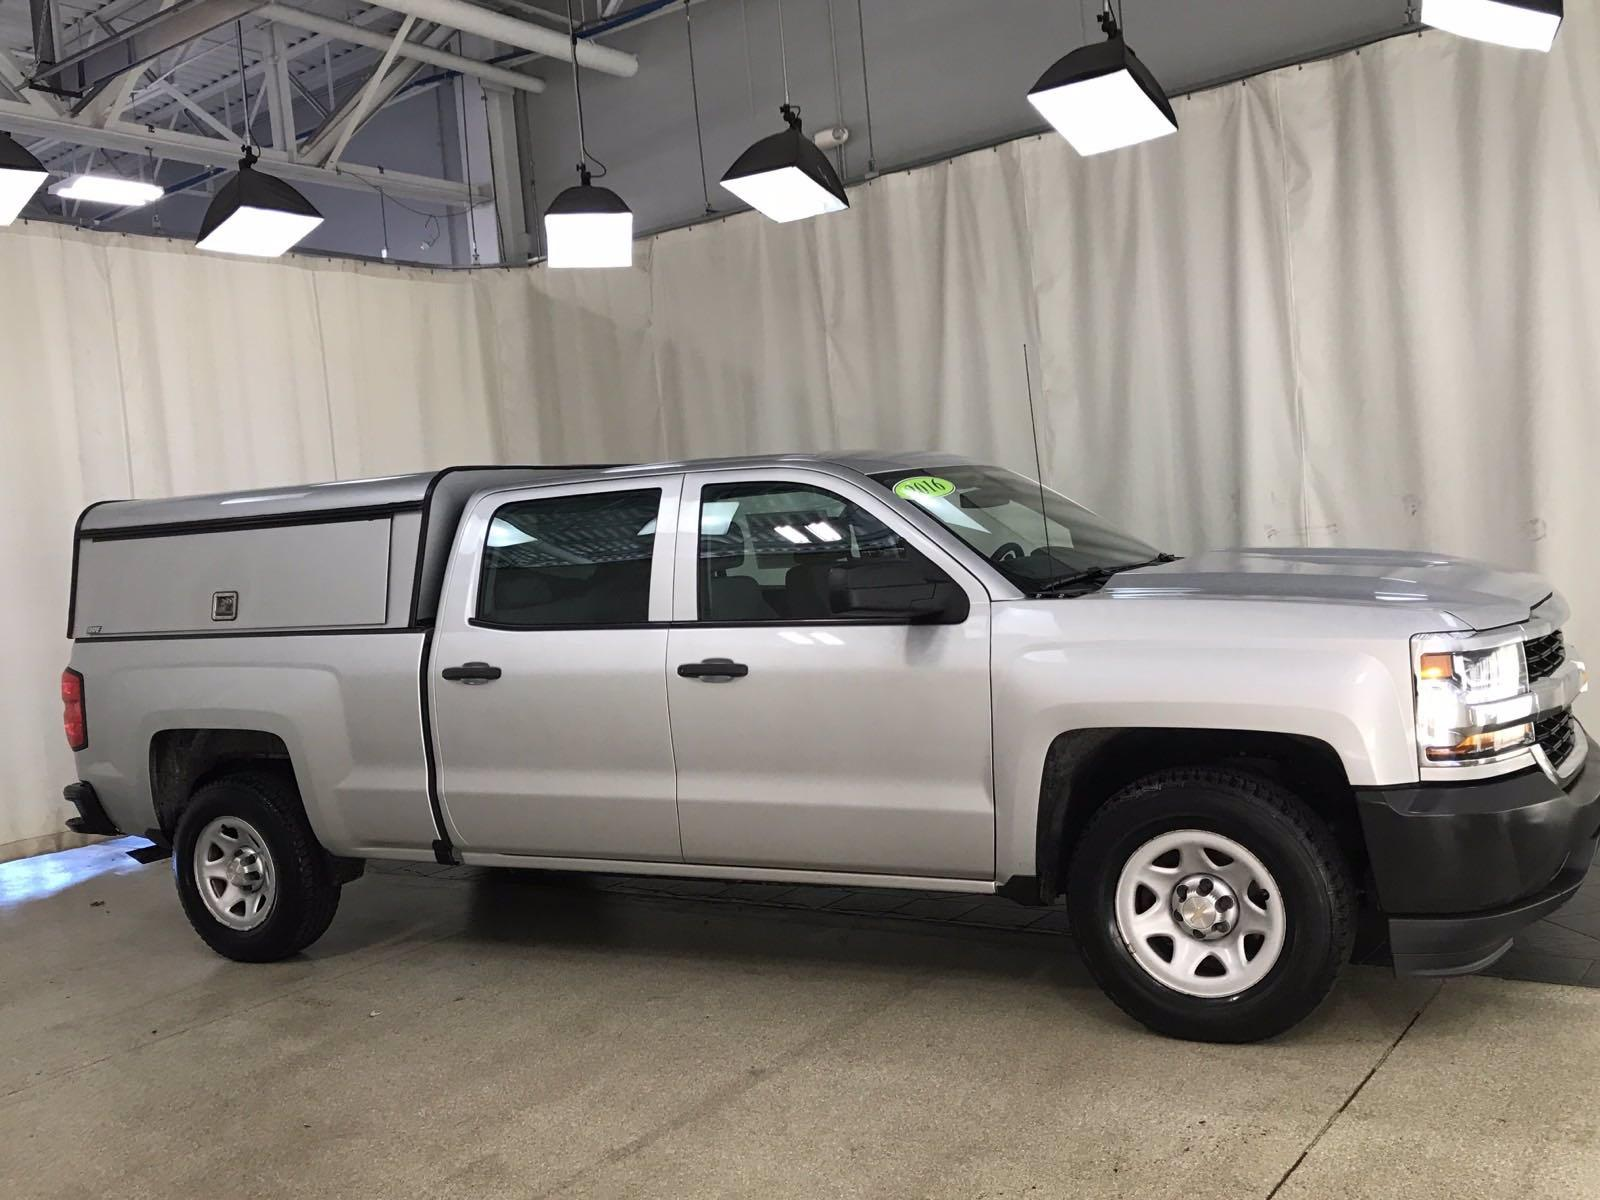 2016 Chevrolet Silverado 1500 Crew Cab 4x2, Pickup #BP7605 - photo 3